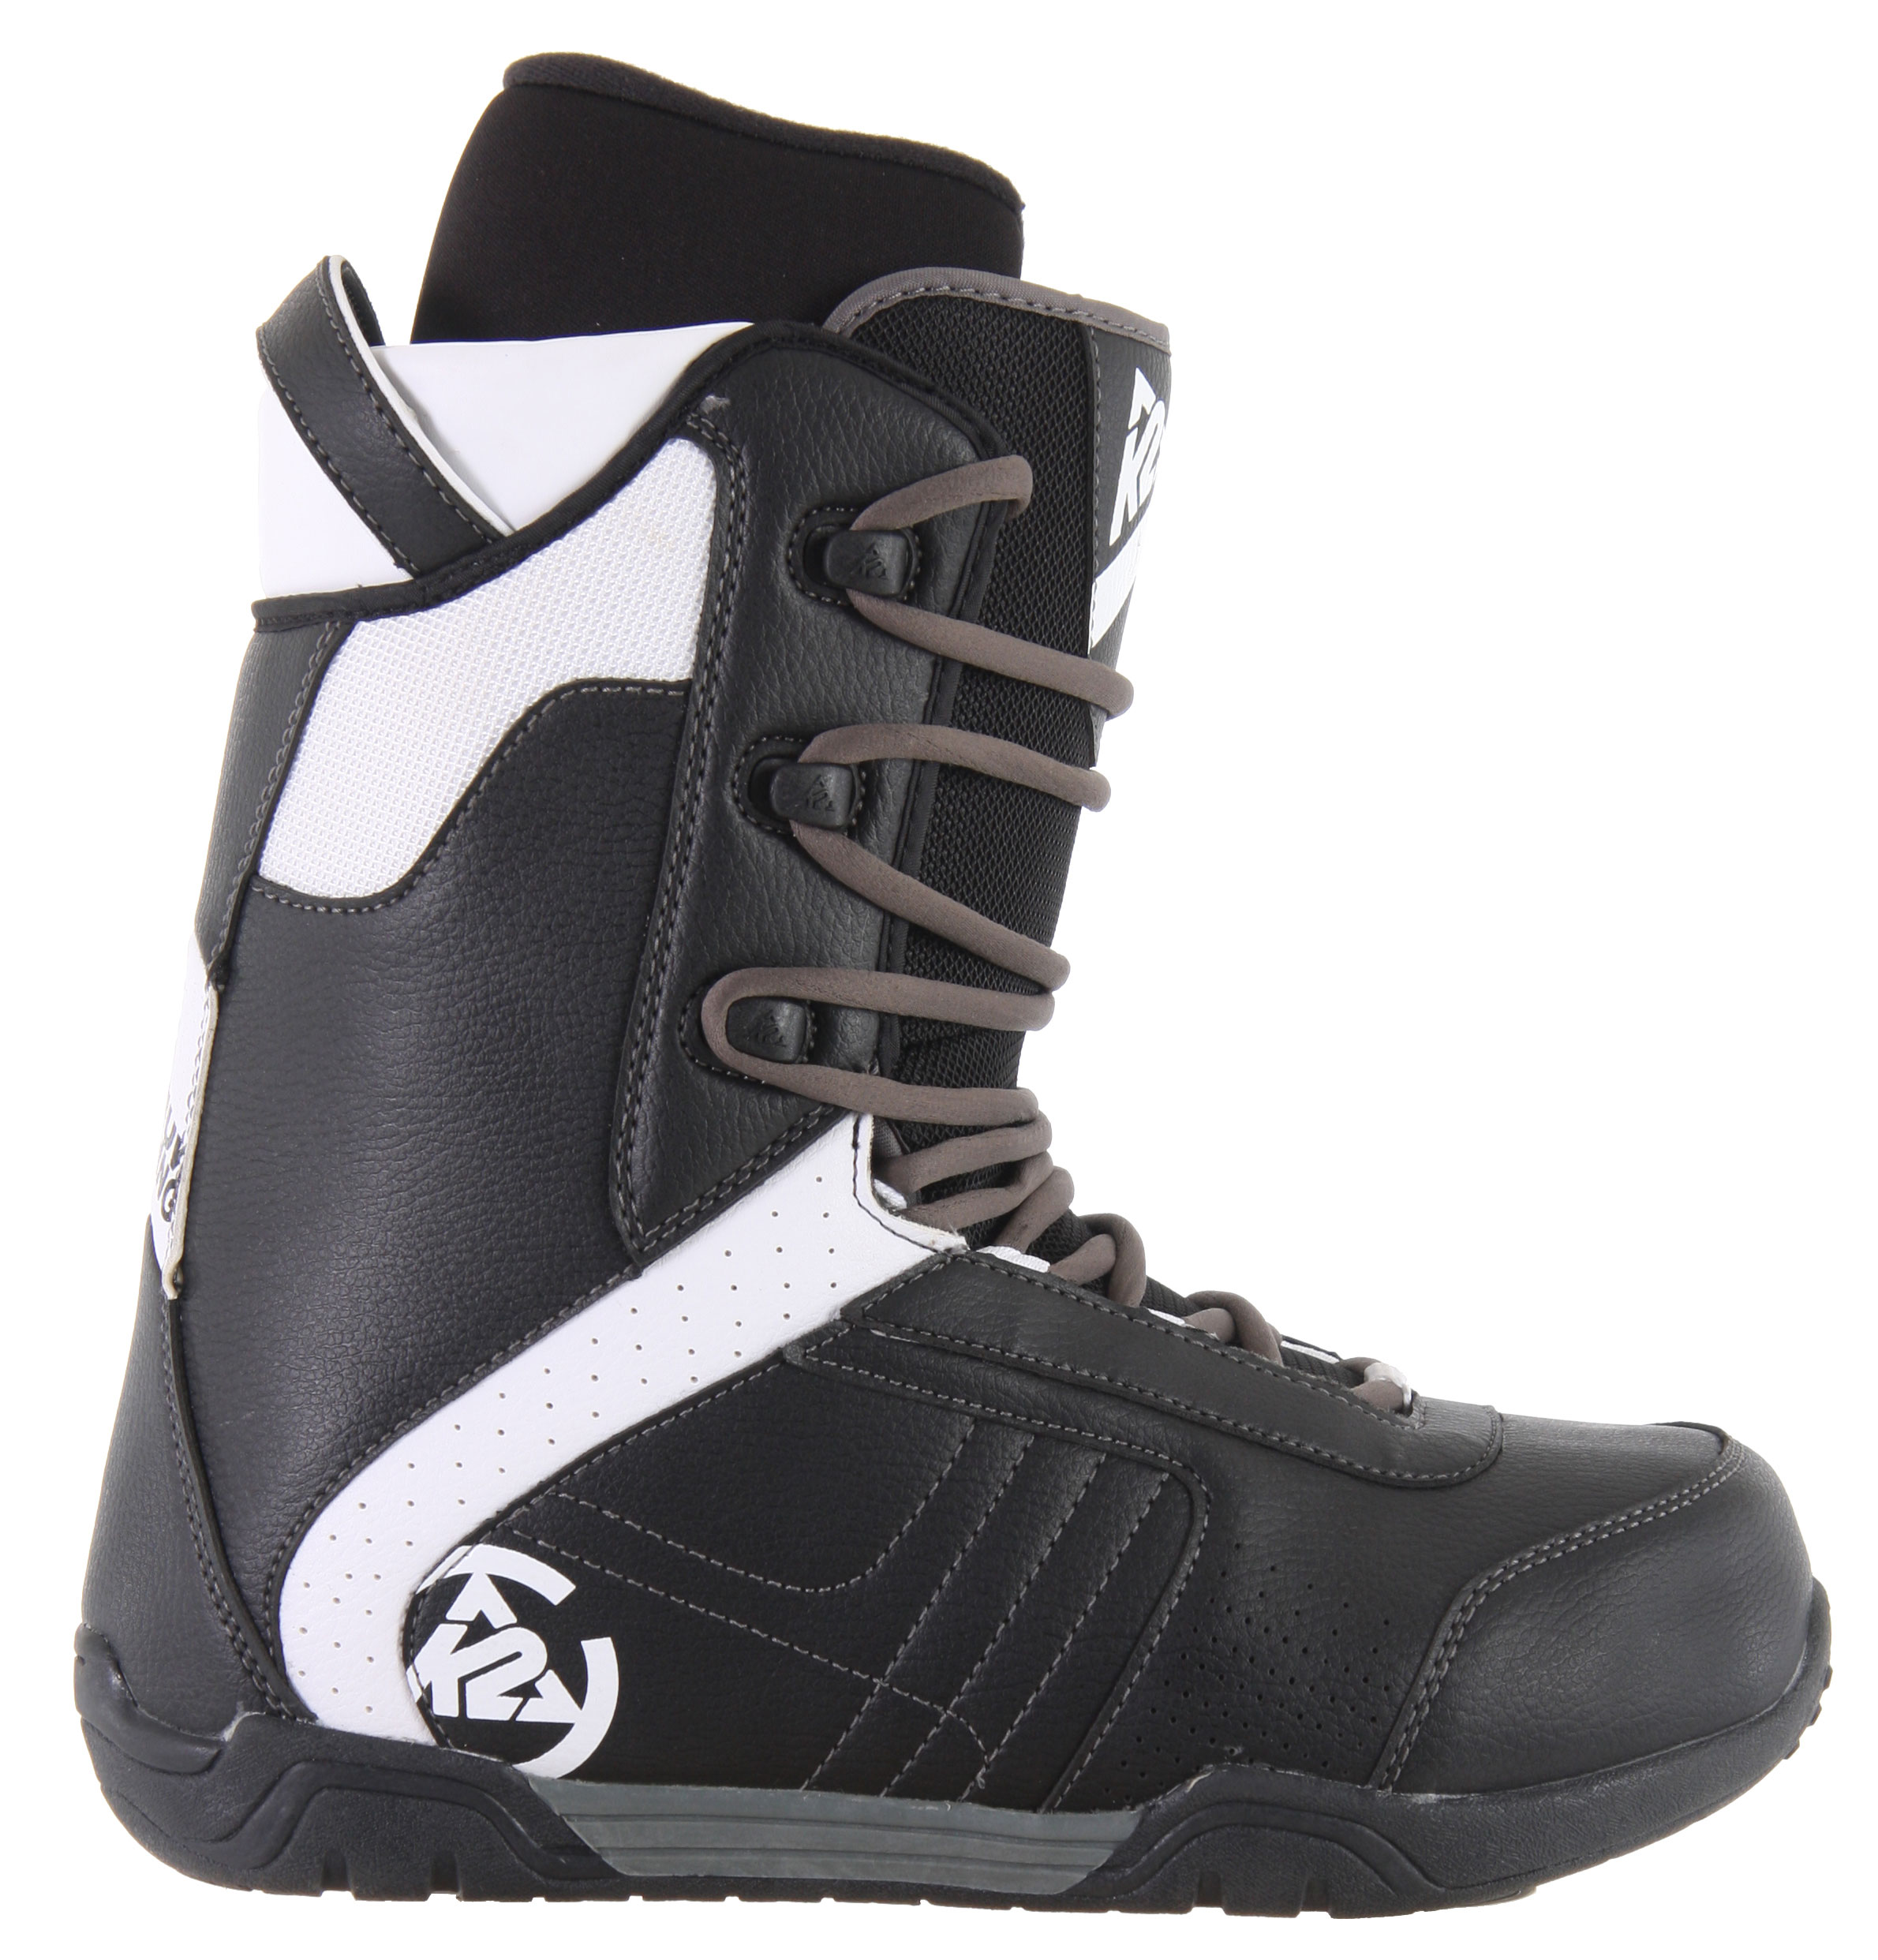 Snowboard Get comfort and performance with K2's Range snowboard boots. The leather forefoot is tough and provides support through the critical forefoot for responsiveness in the turns. The synthetic backstay and toecap add durability so they can take the punishment you dish out, and the EZ-fit 3D lining gives you custom comfort that snugly holds your foot without sacrificing comfort. Ride comfortable all day, and get durable performance with the K2 Range snowboard boots, and tear up the slopes.Key Features of the K2 Range Snowboard Boots: Heel pull Leather forefoot Synthetic Backstay and Toe Cap EZ-Fit 3D Liner Cup Sole - $77.95